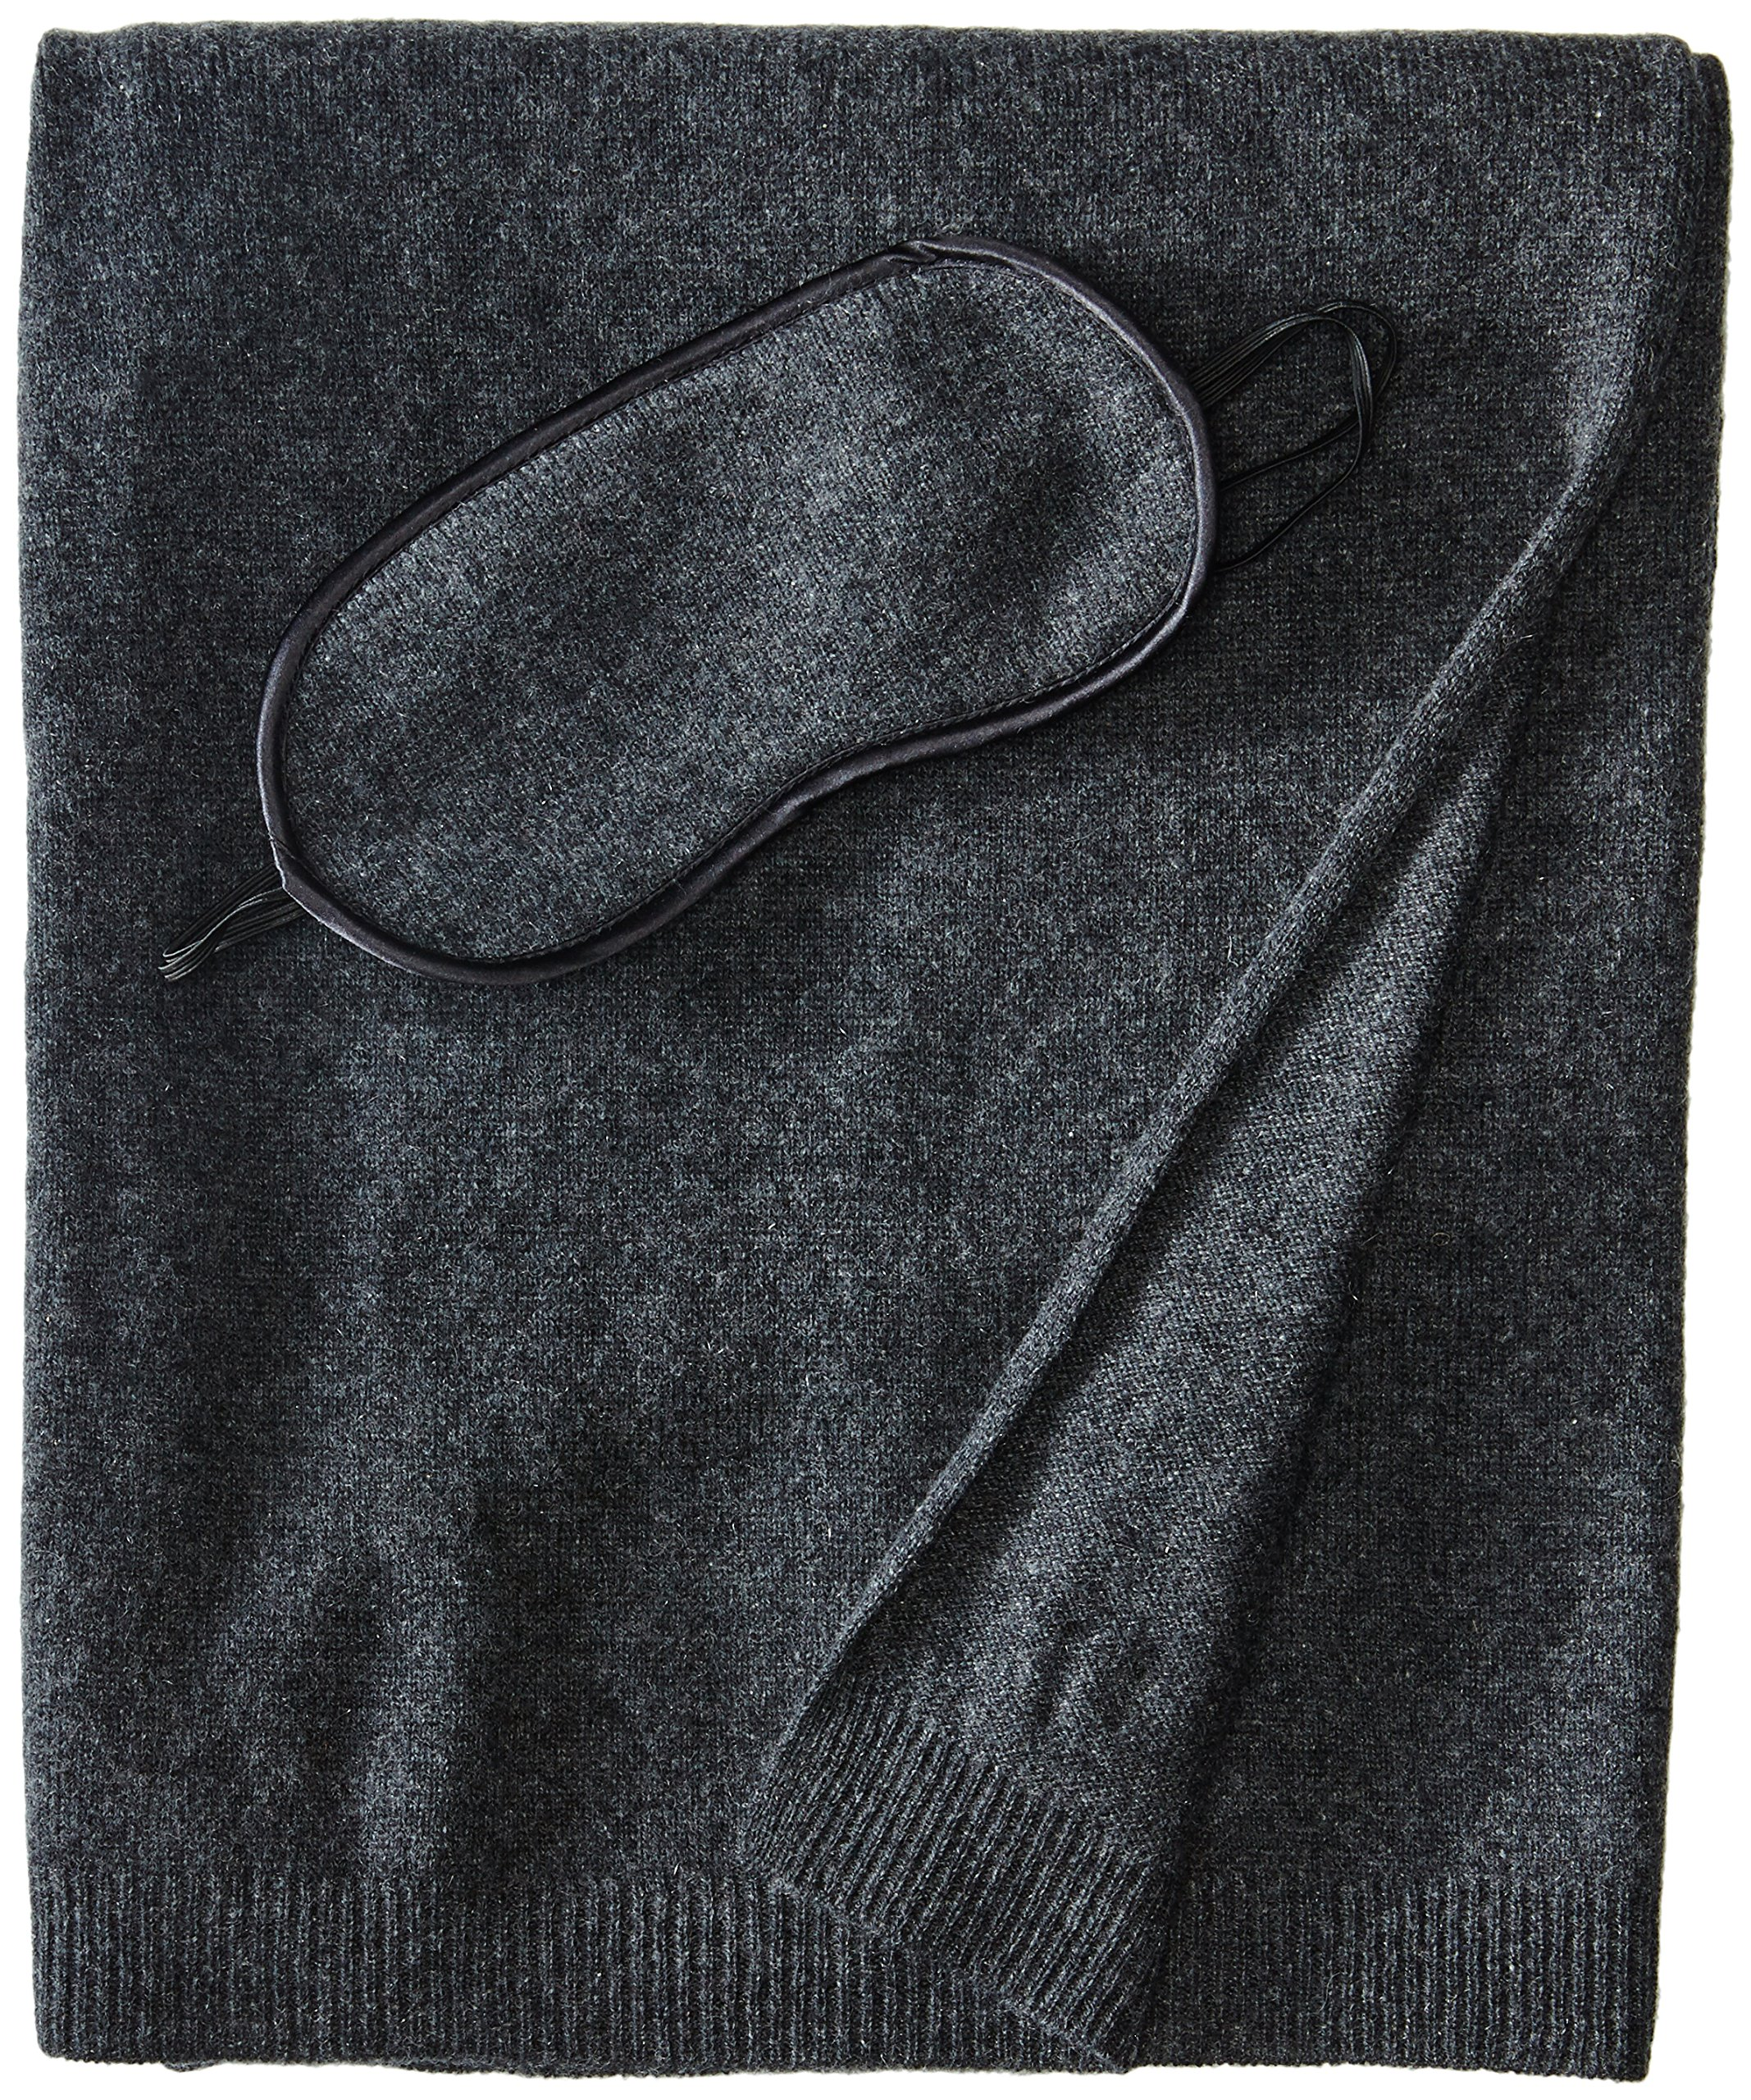 Sofia Cashmere 100% Cashmere Cozy Travel Set with Blanket, Eye Mask, and Bag, Charcoal, One Size